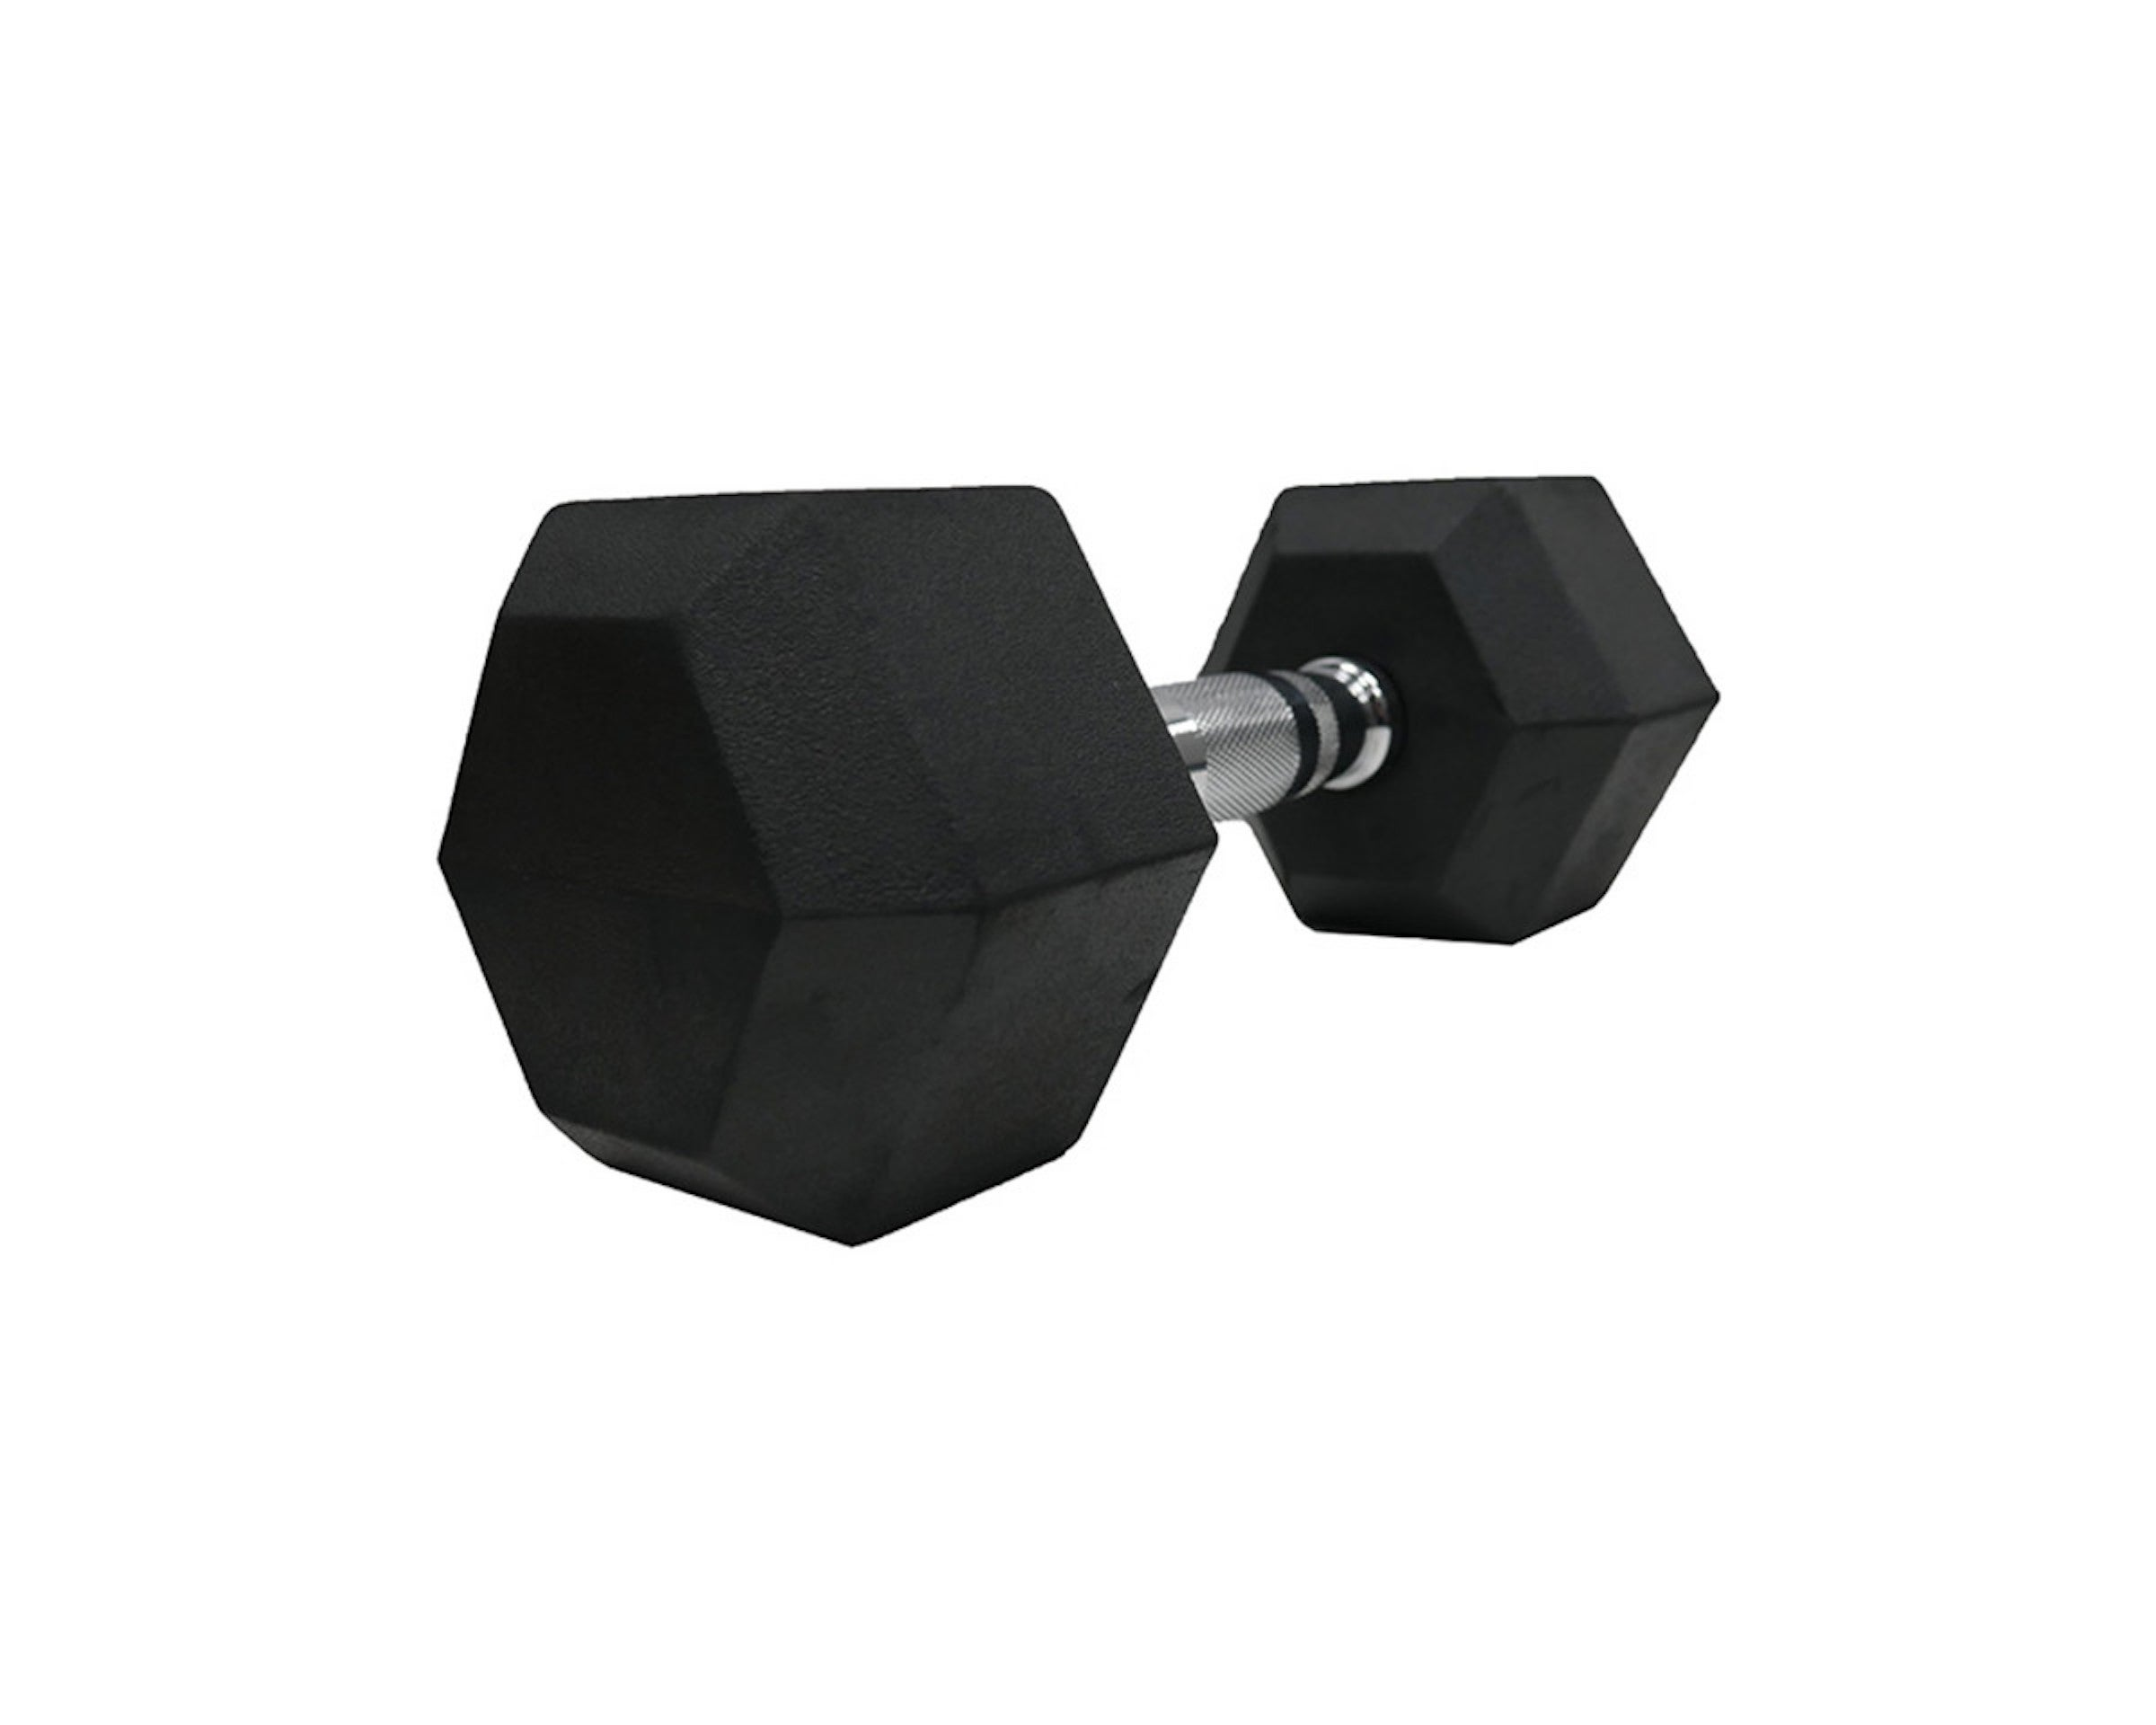 a single Perform Better rubber hex-shaped dumbbell on white background